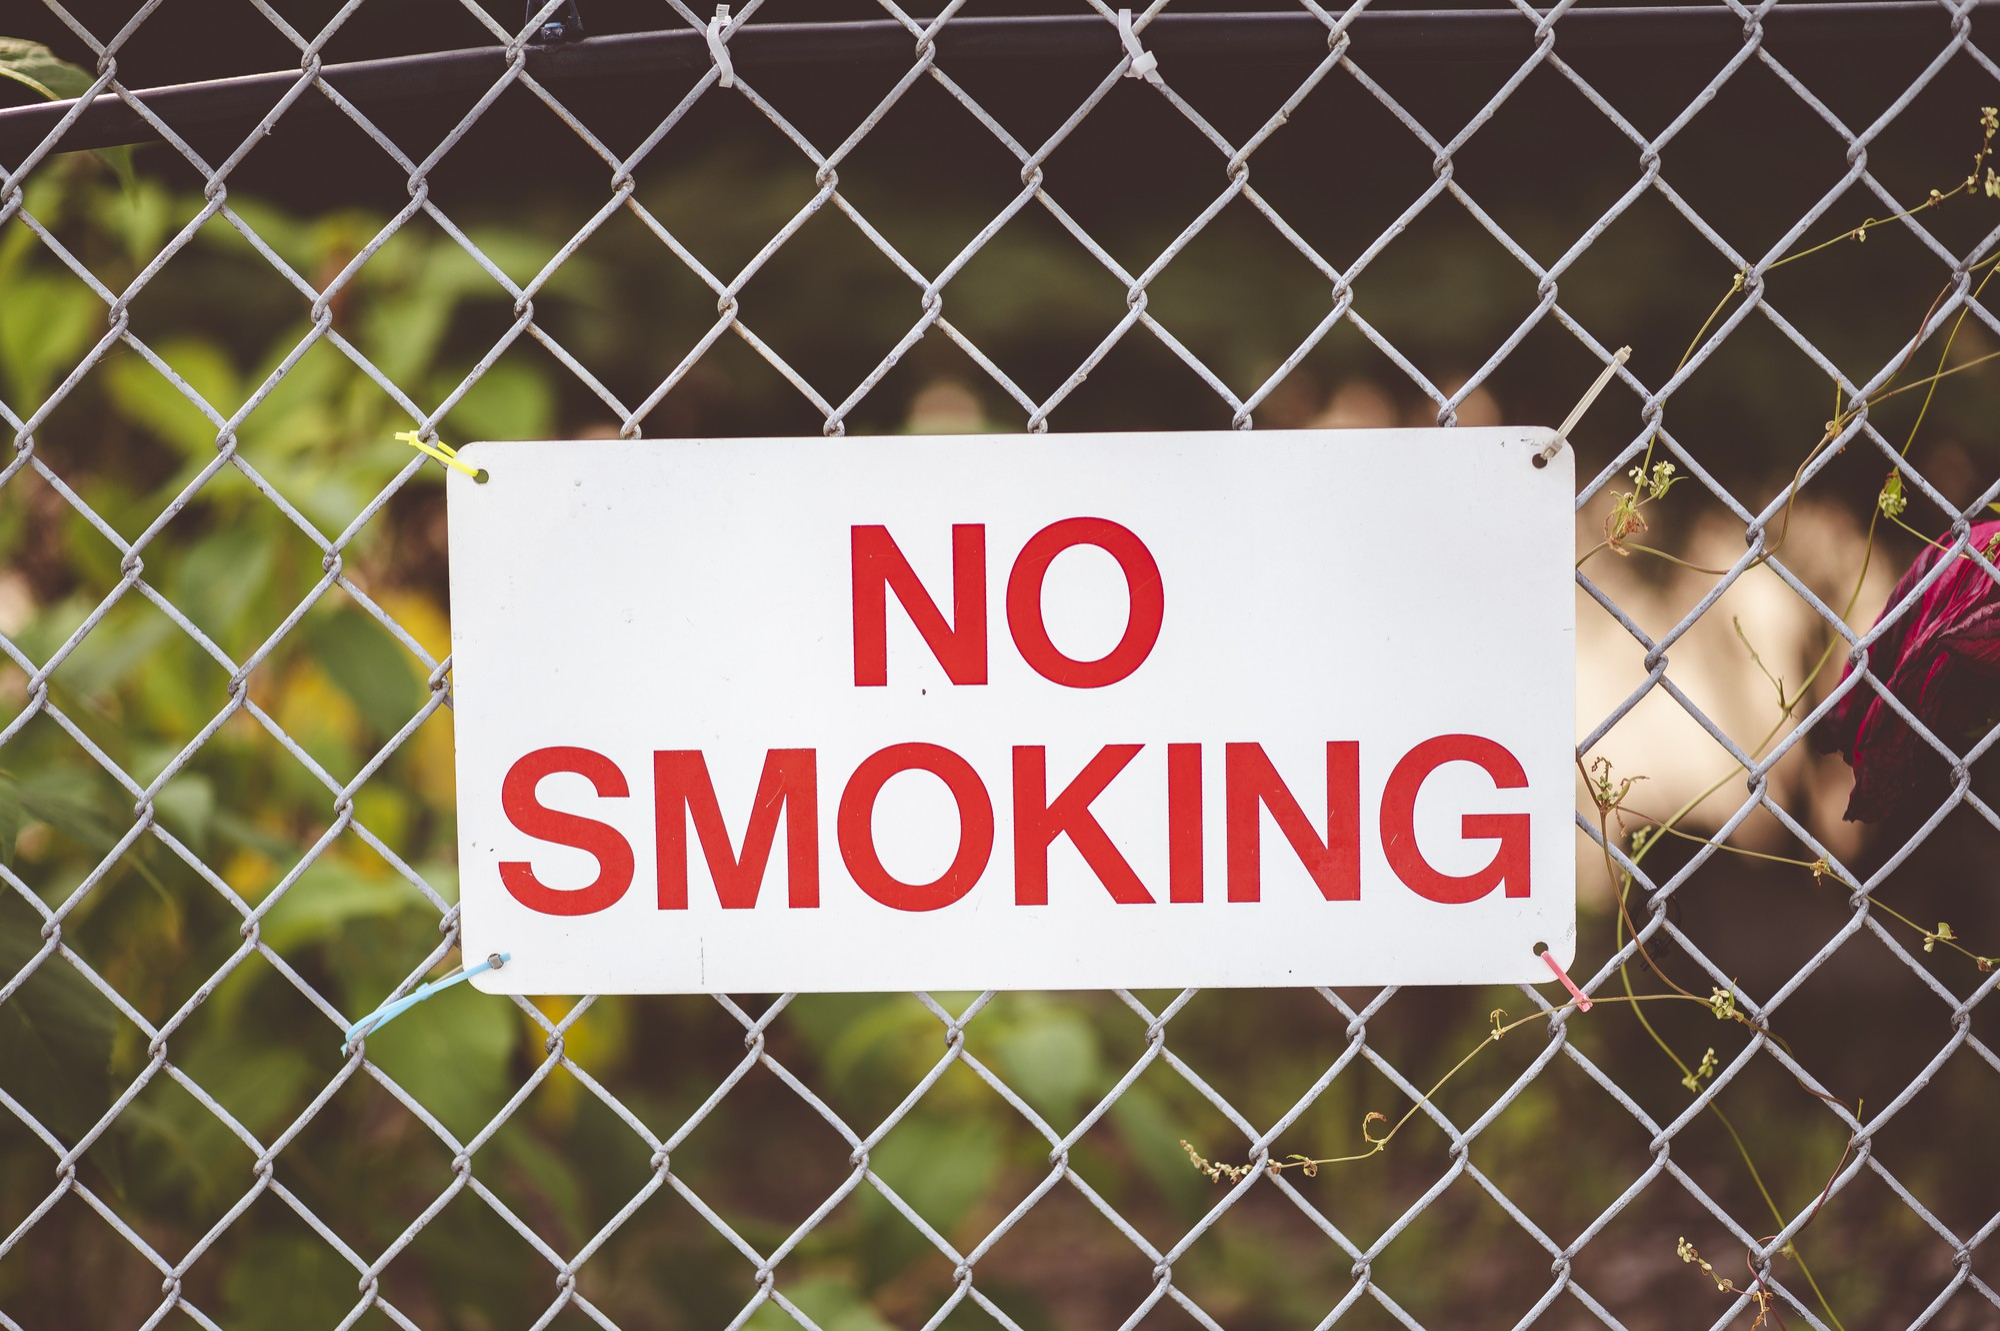 Closeup-focus-shot-of-no-smoking-sign-hanging-by-the-fence.jpg